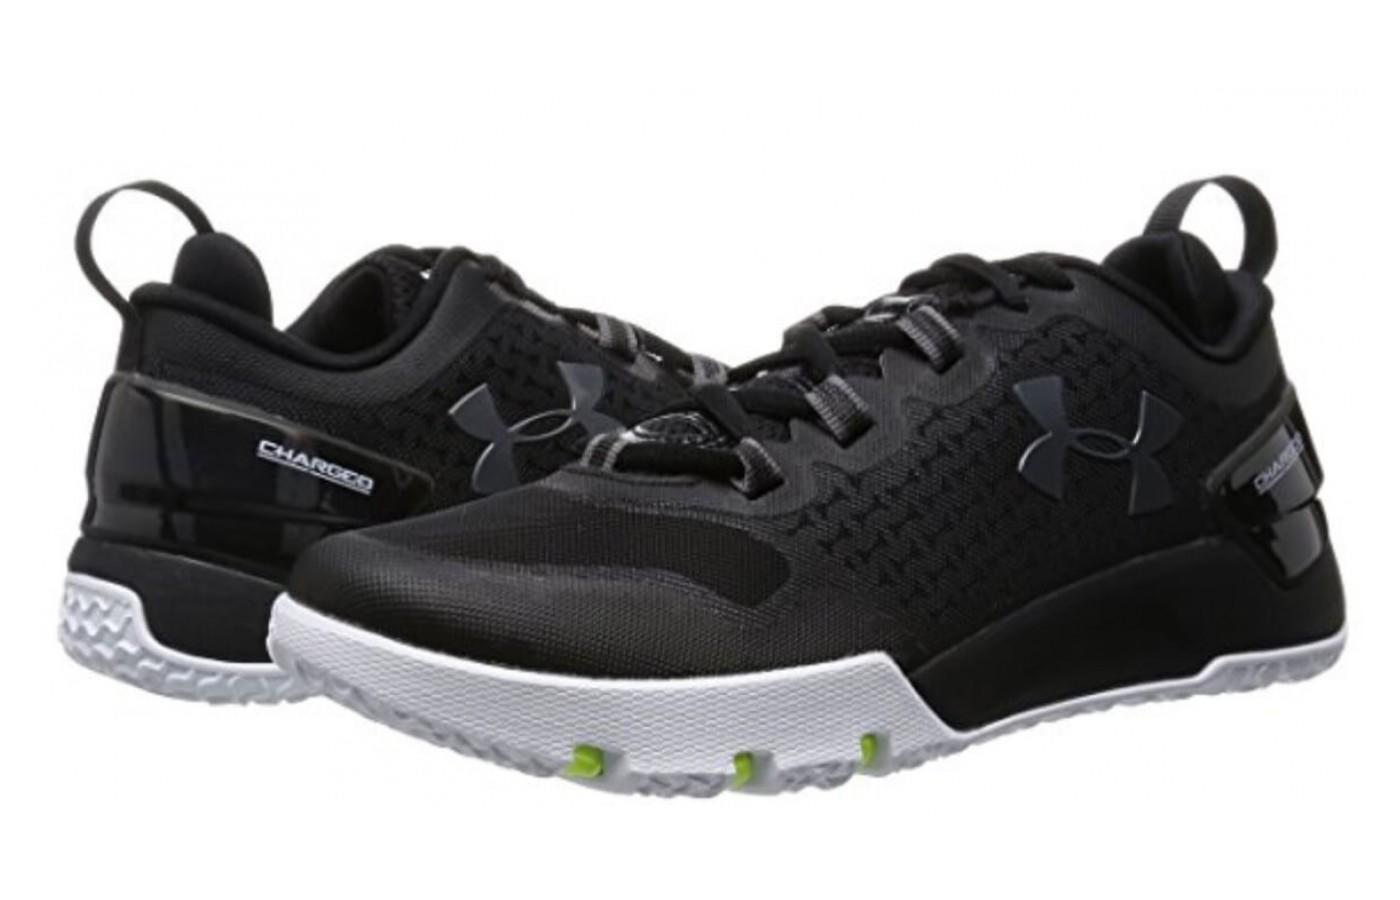 Under Armour Charged Ultimate full pair